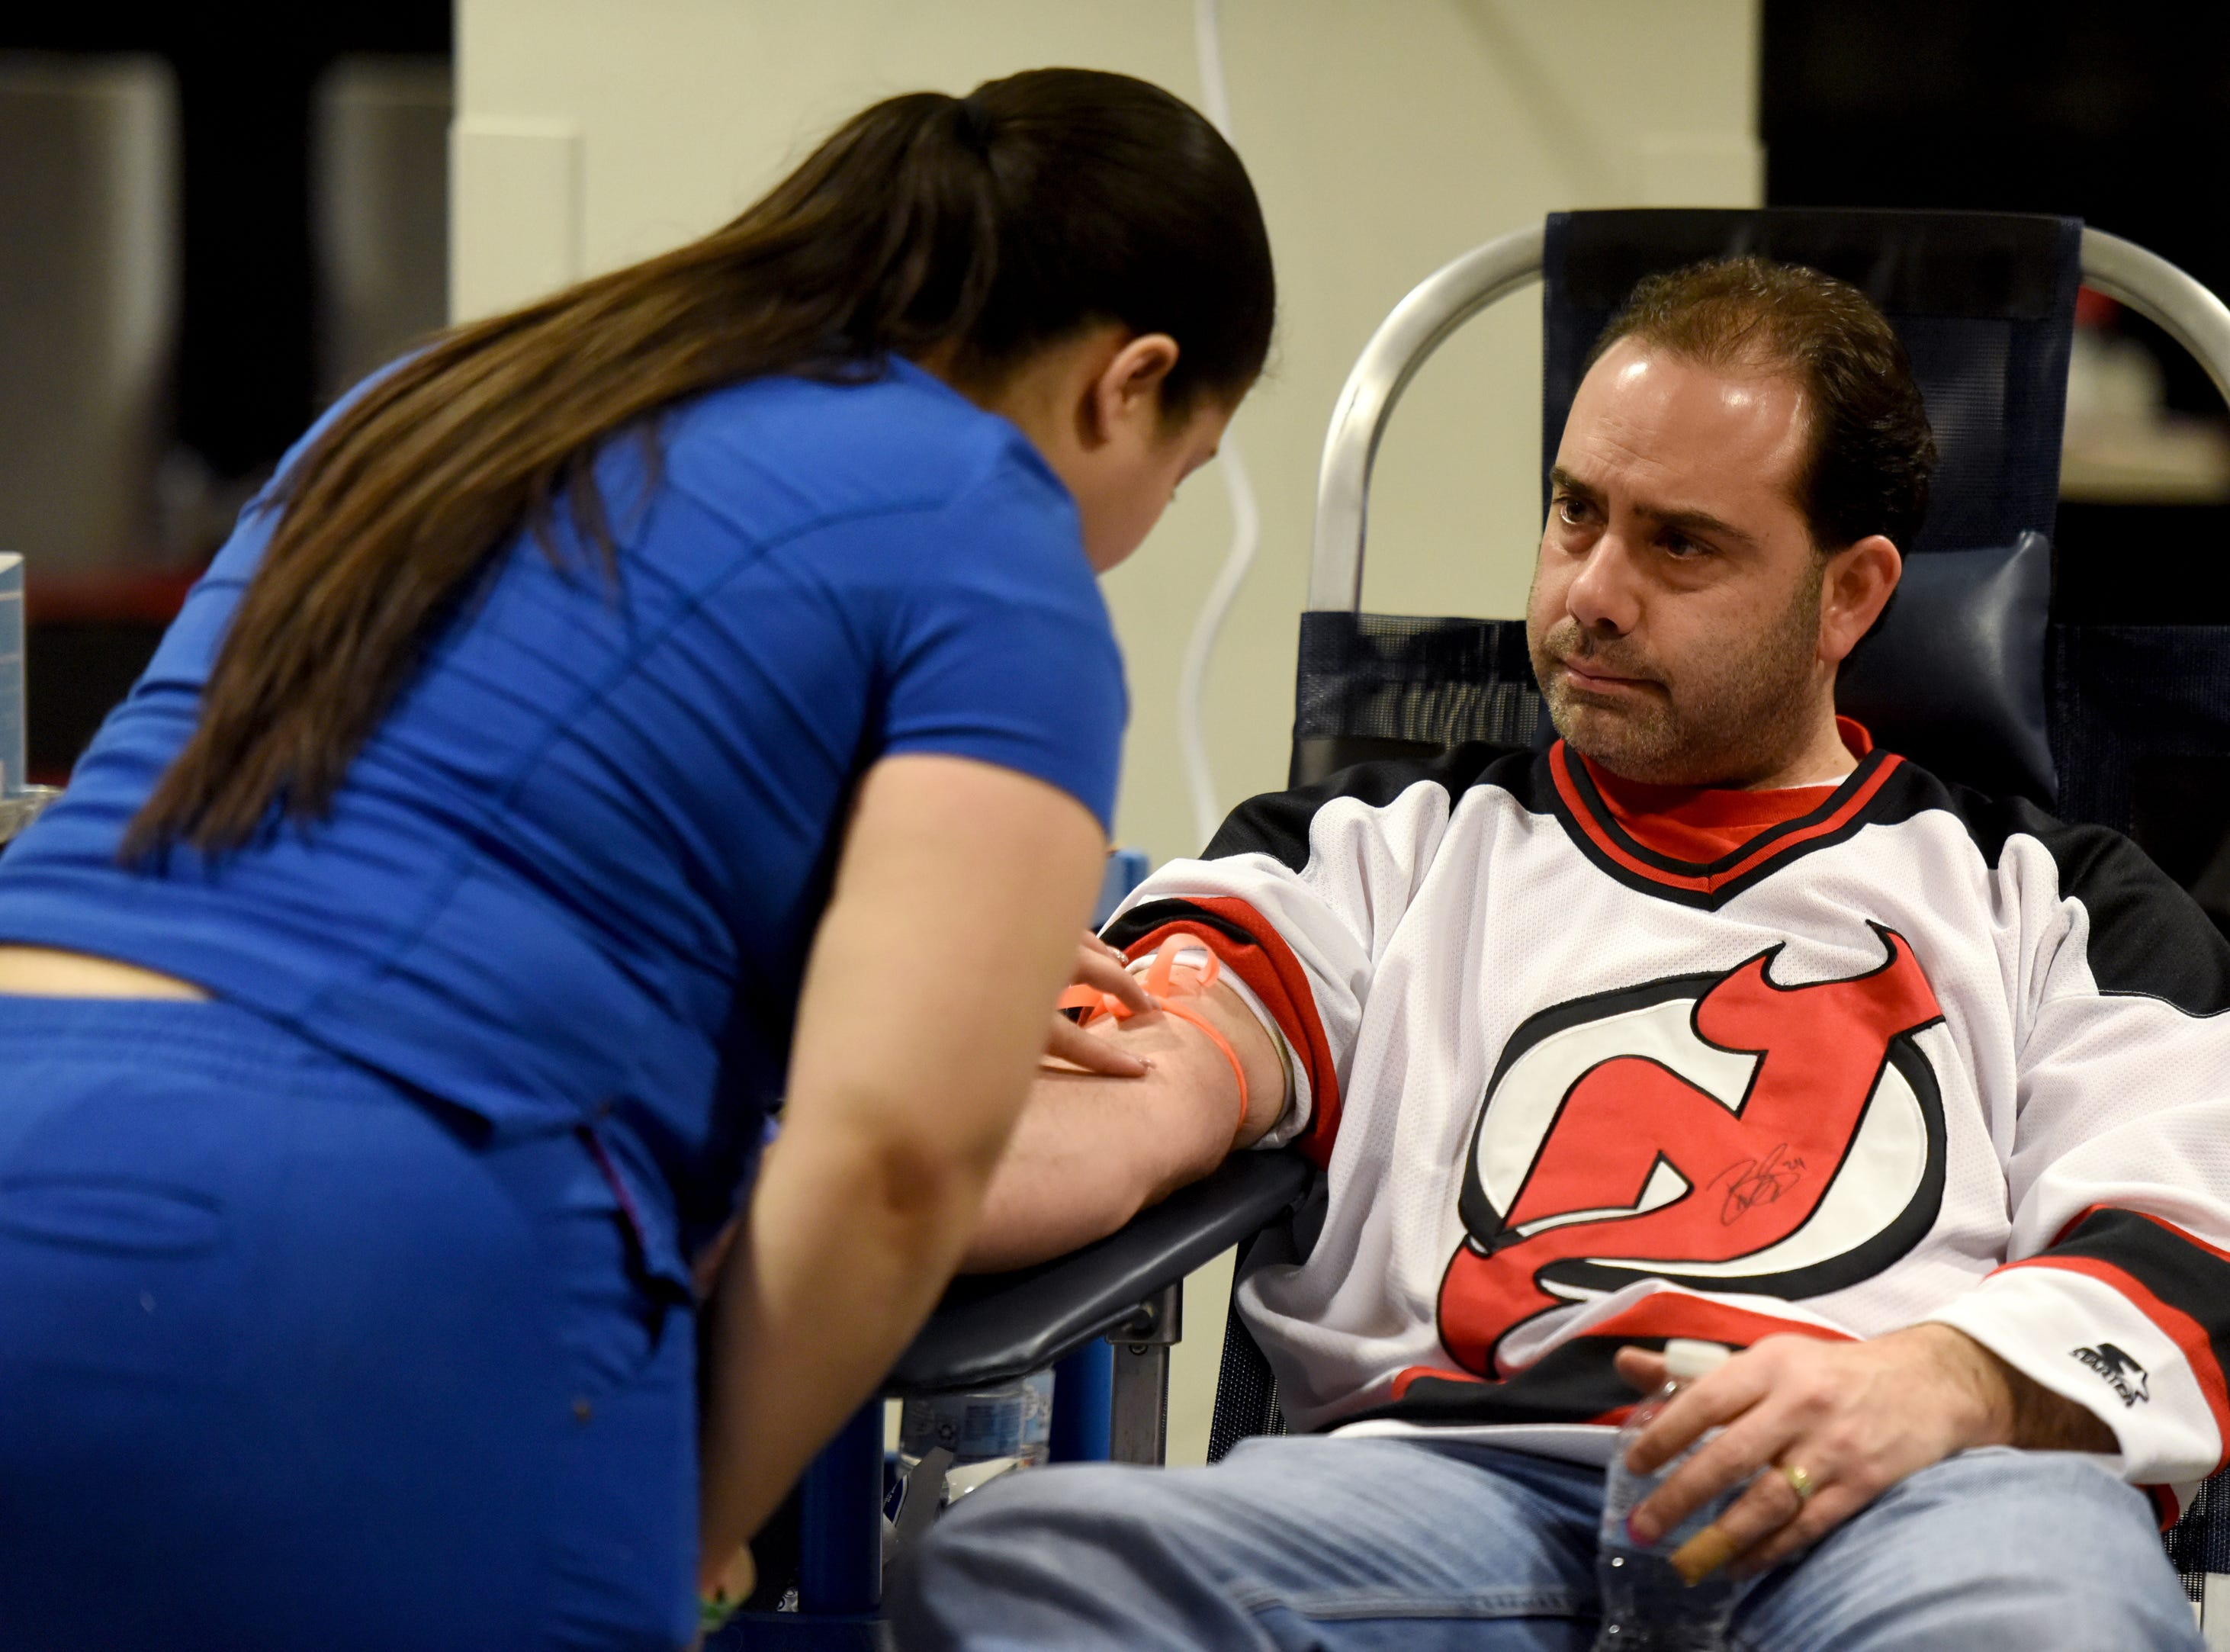 The New Jersey Devils and RWJBarnabas Health hosted their third annual blood drive in coordination with the American Red Cross on Sunday, March 10, 2019 at the Prudential Center in Newark. Blood donor Jason Caracciolo watches apheresis tech Danellis Diaz look for a vein.